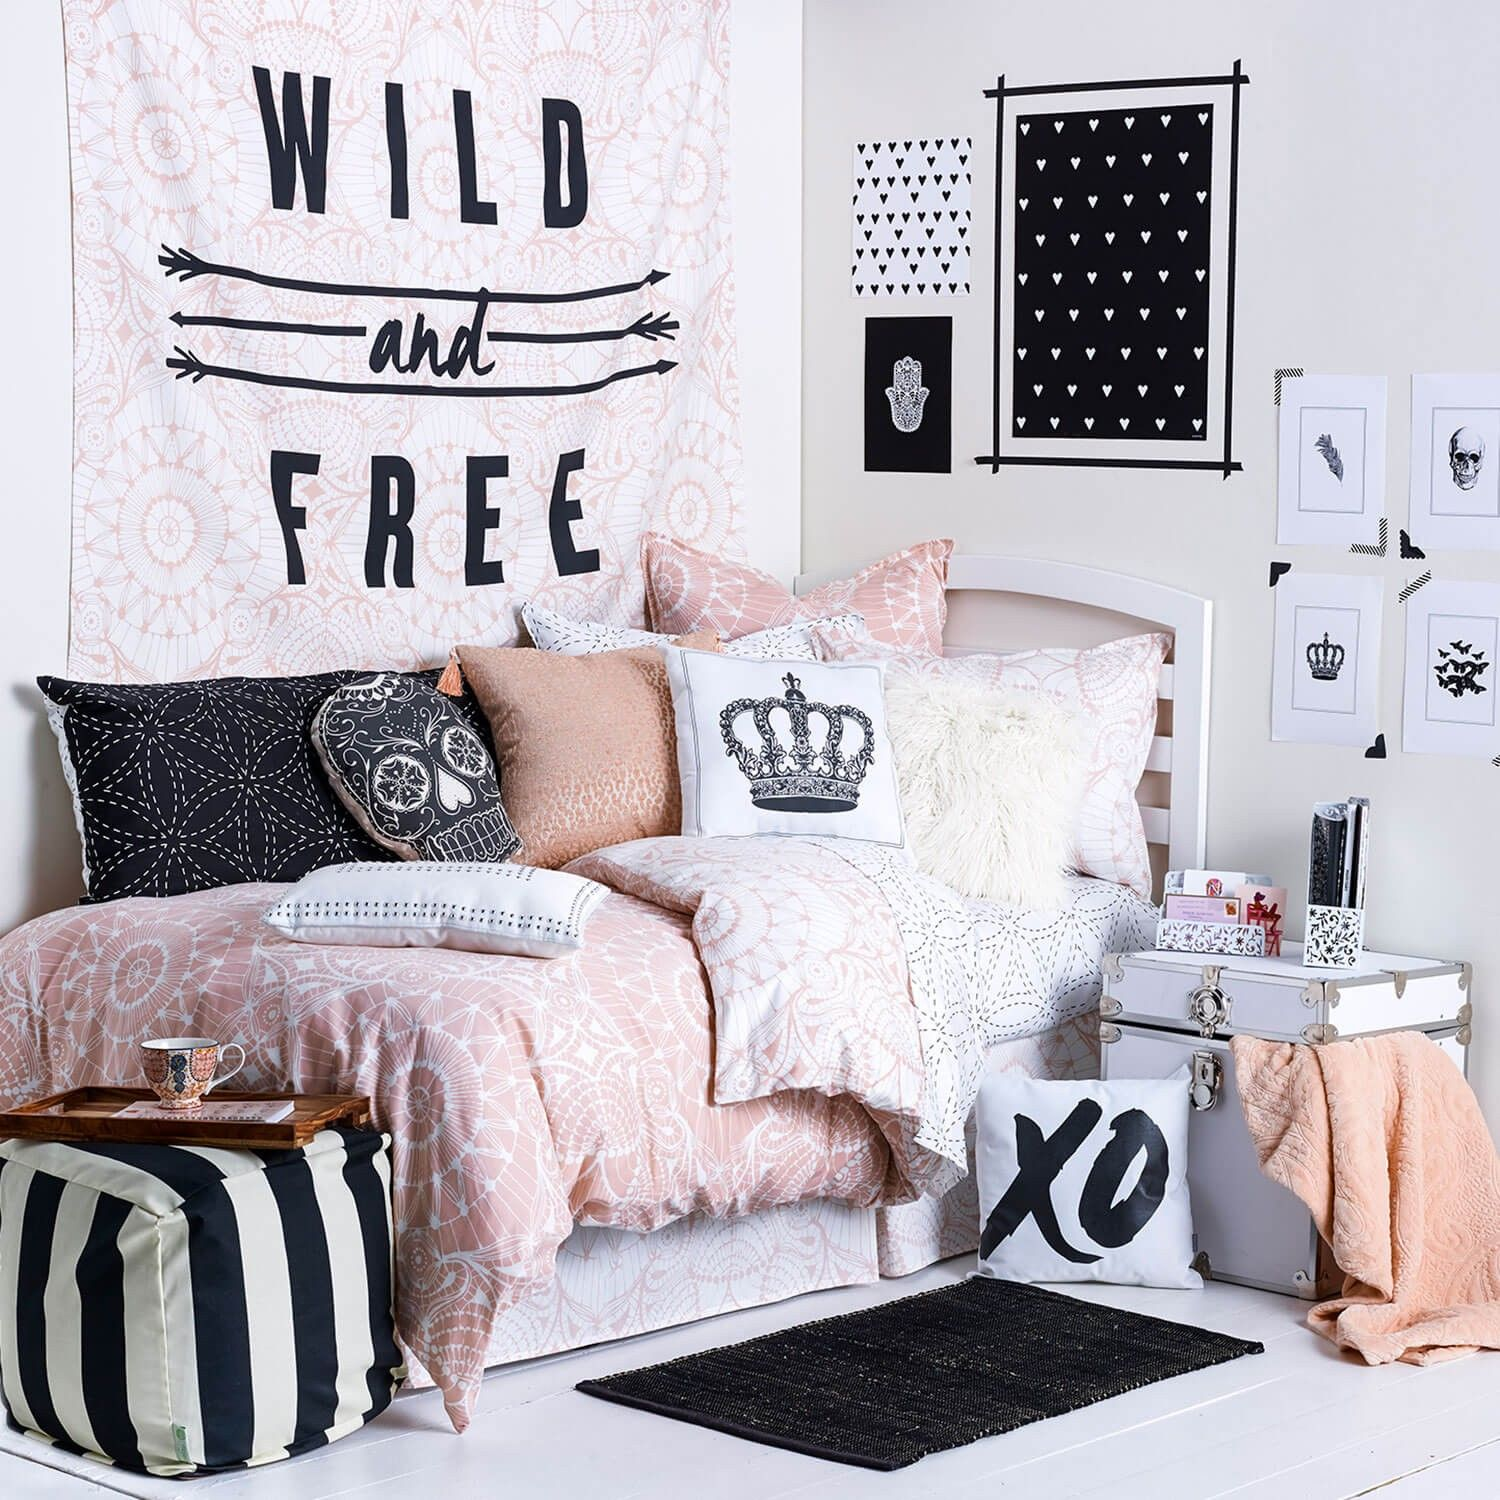 Free spirit room rooms decoracion de hogar pinterest for Decoracion hogar habitaciones